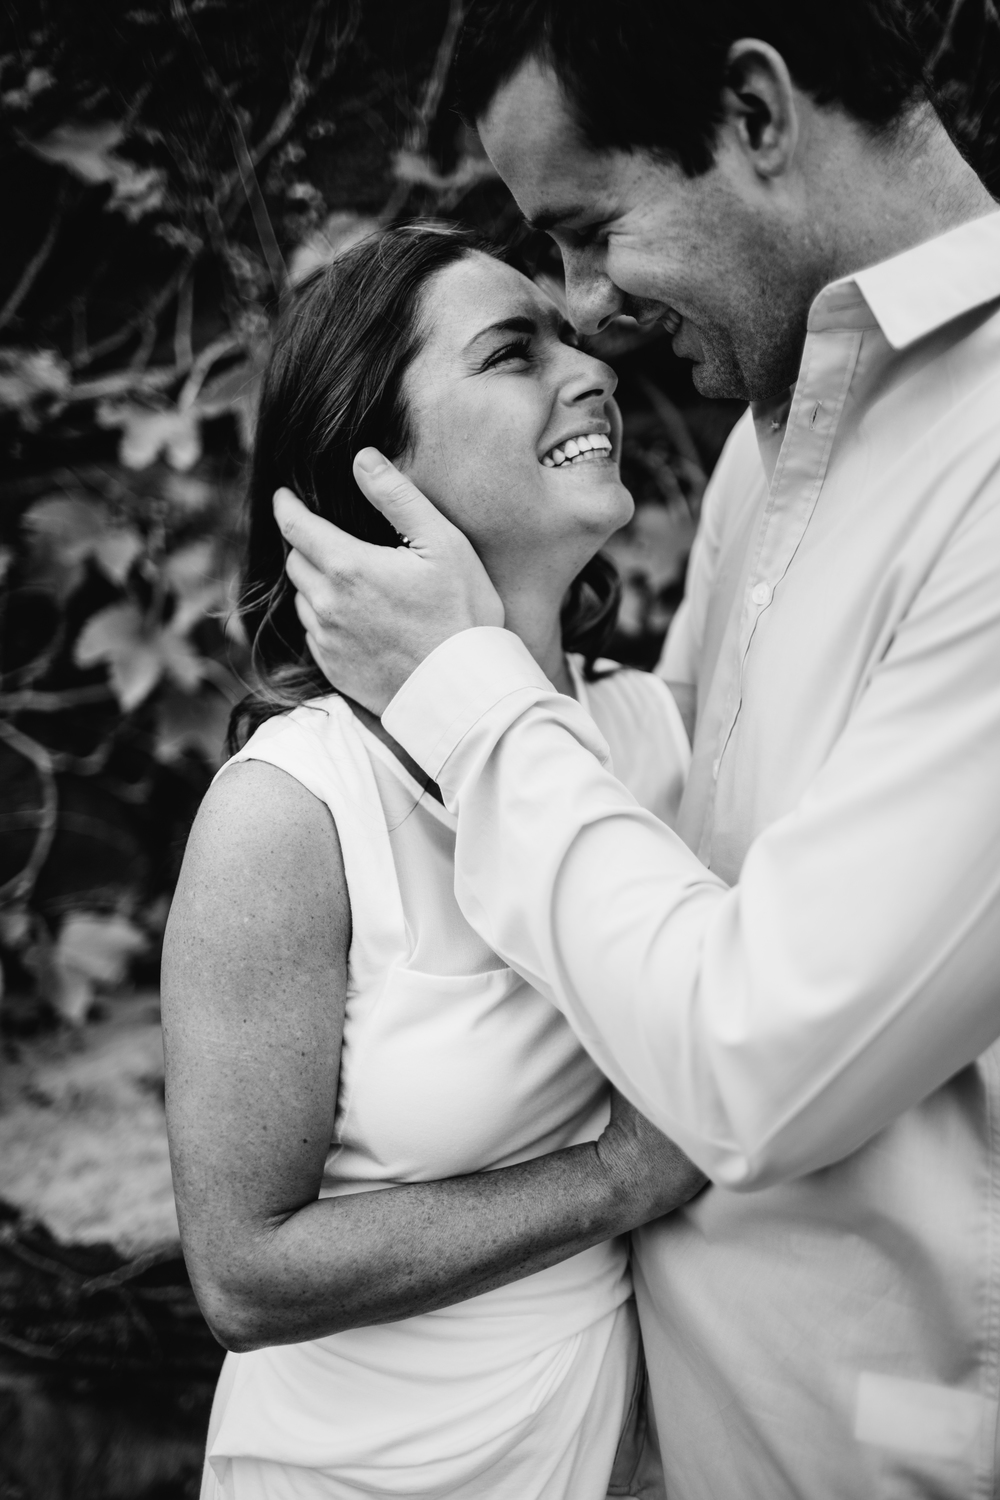 BRITTANYandKEVIN-Engagement2015 (69 of 115).jpg